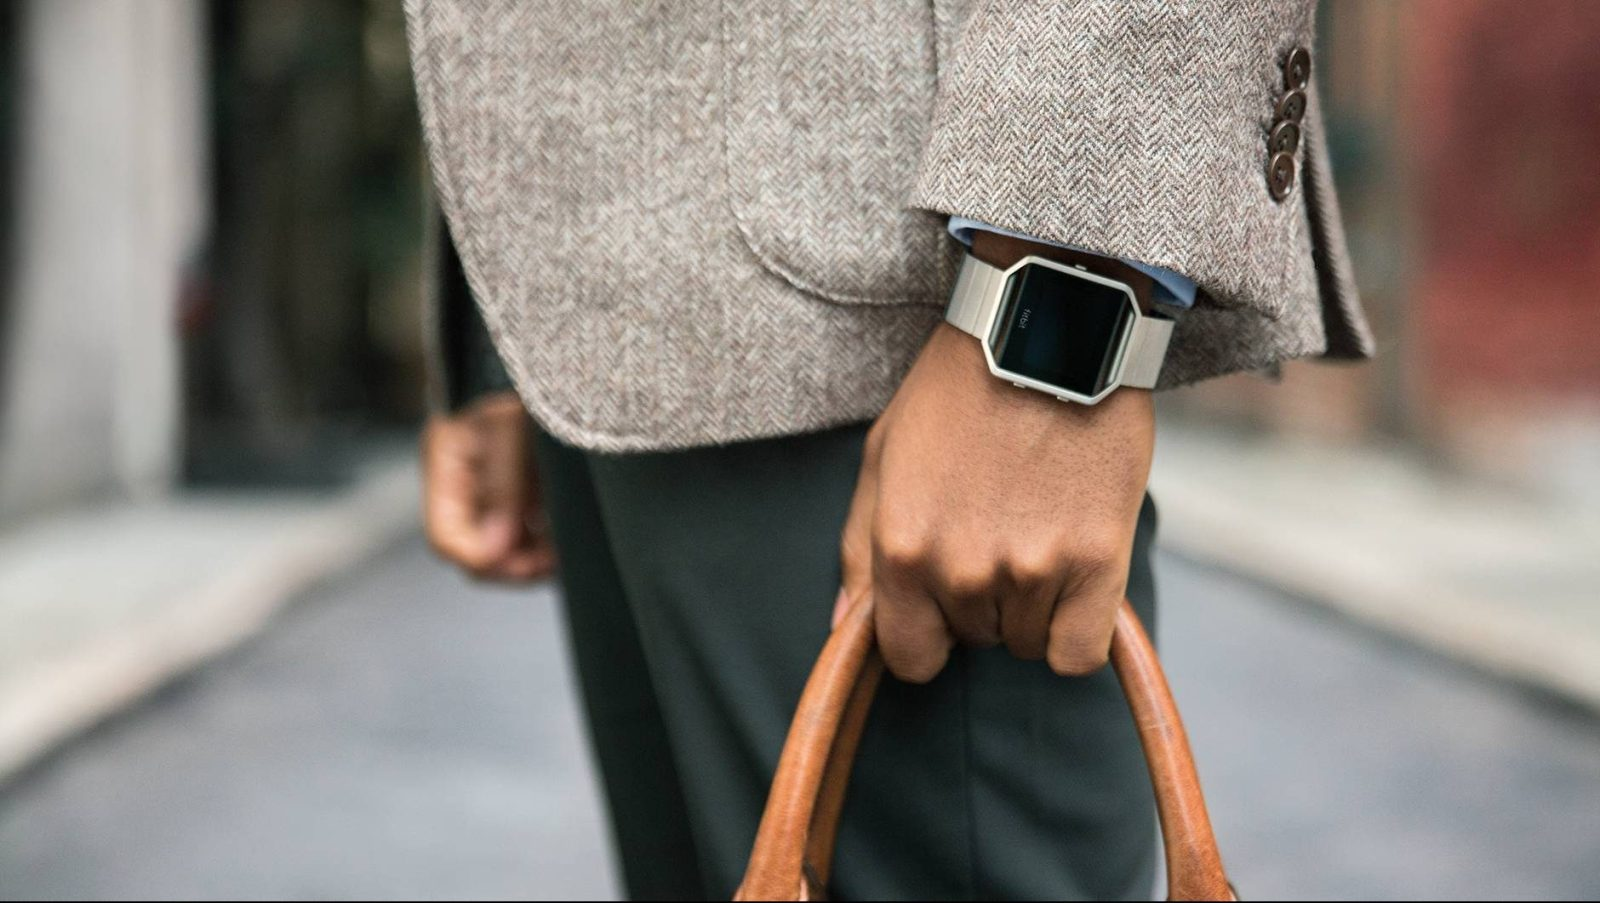 Fitbit is looking to add sleep apnea tracking to future wearables